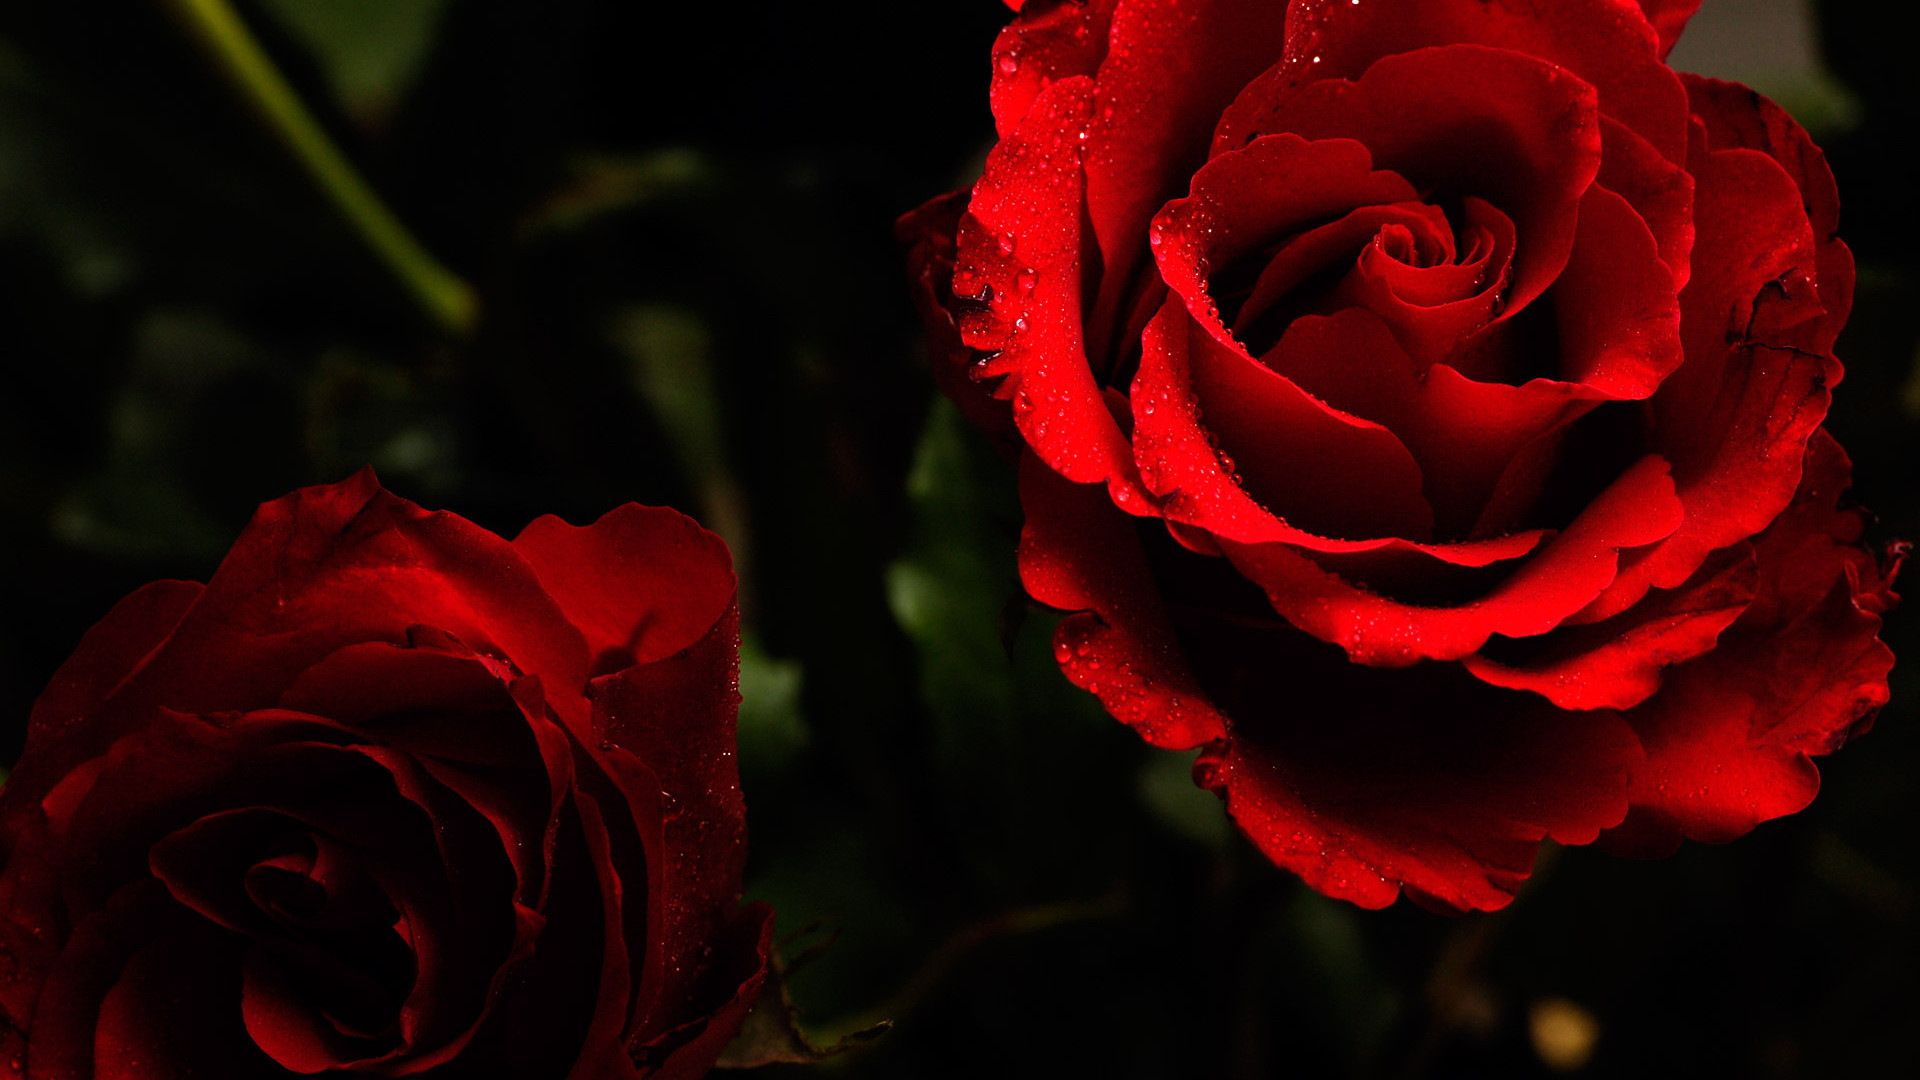 Res: 1920x1080, Red Flowers Wallpaper